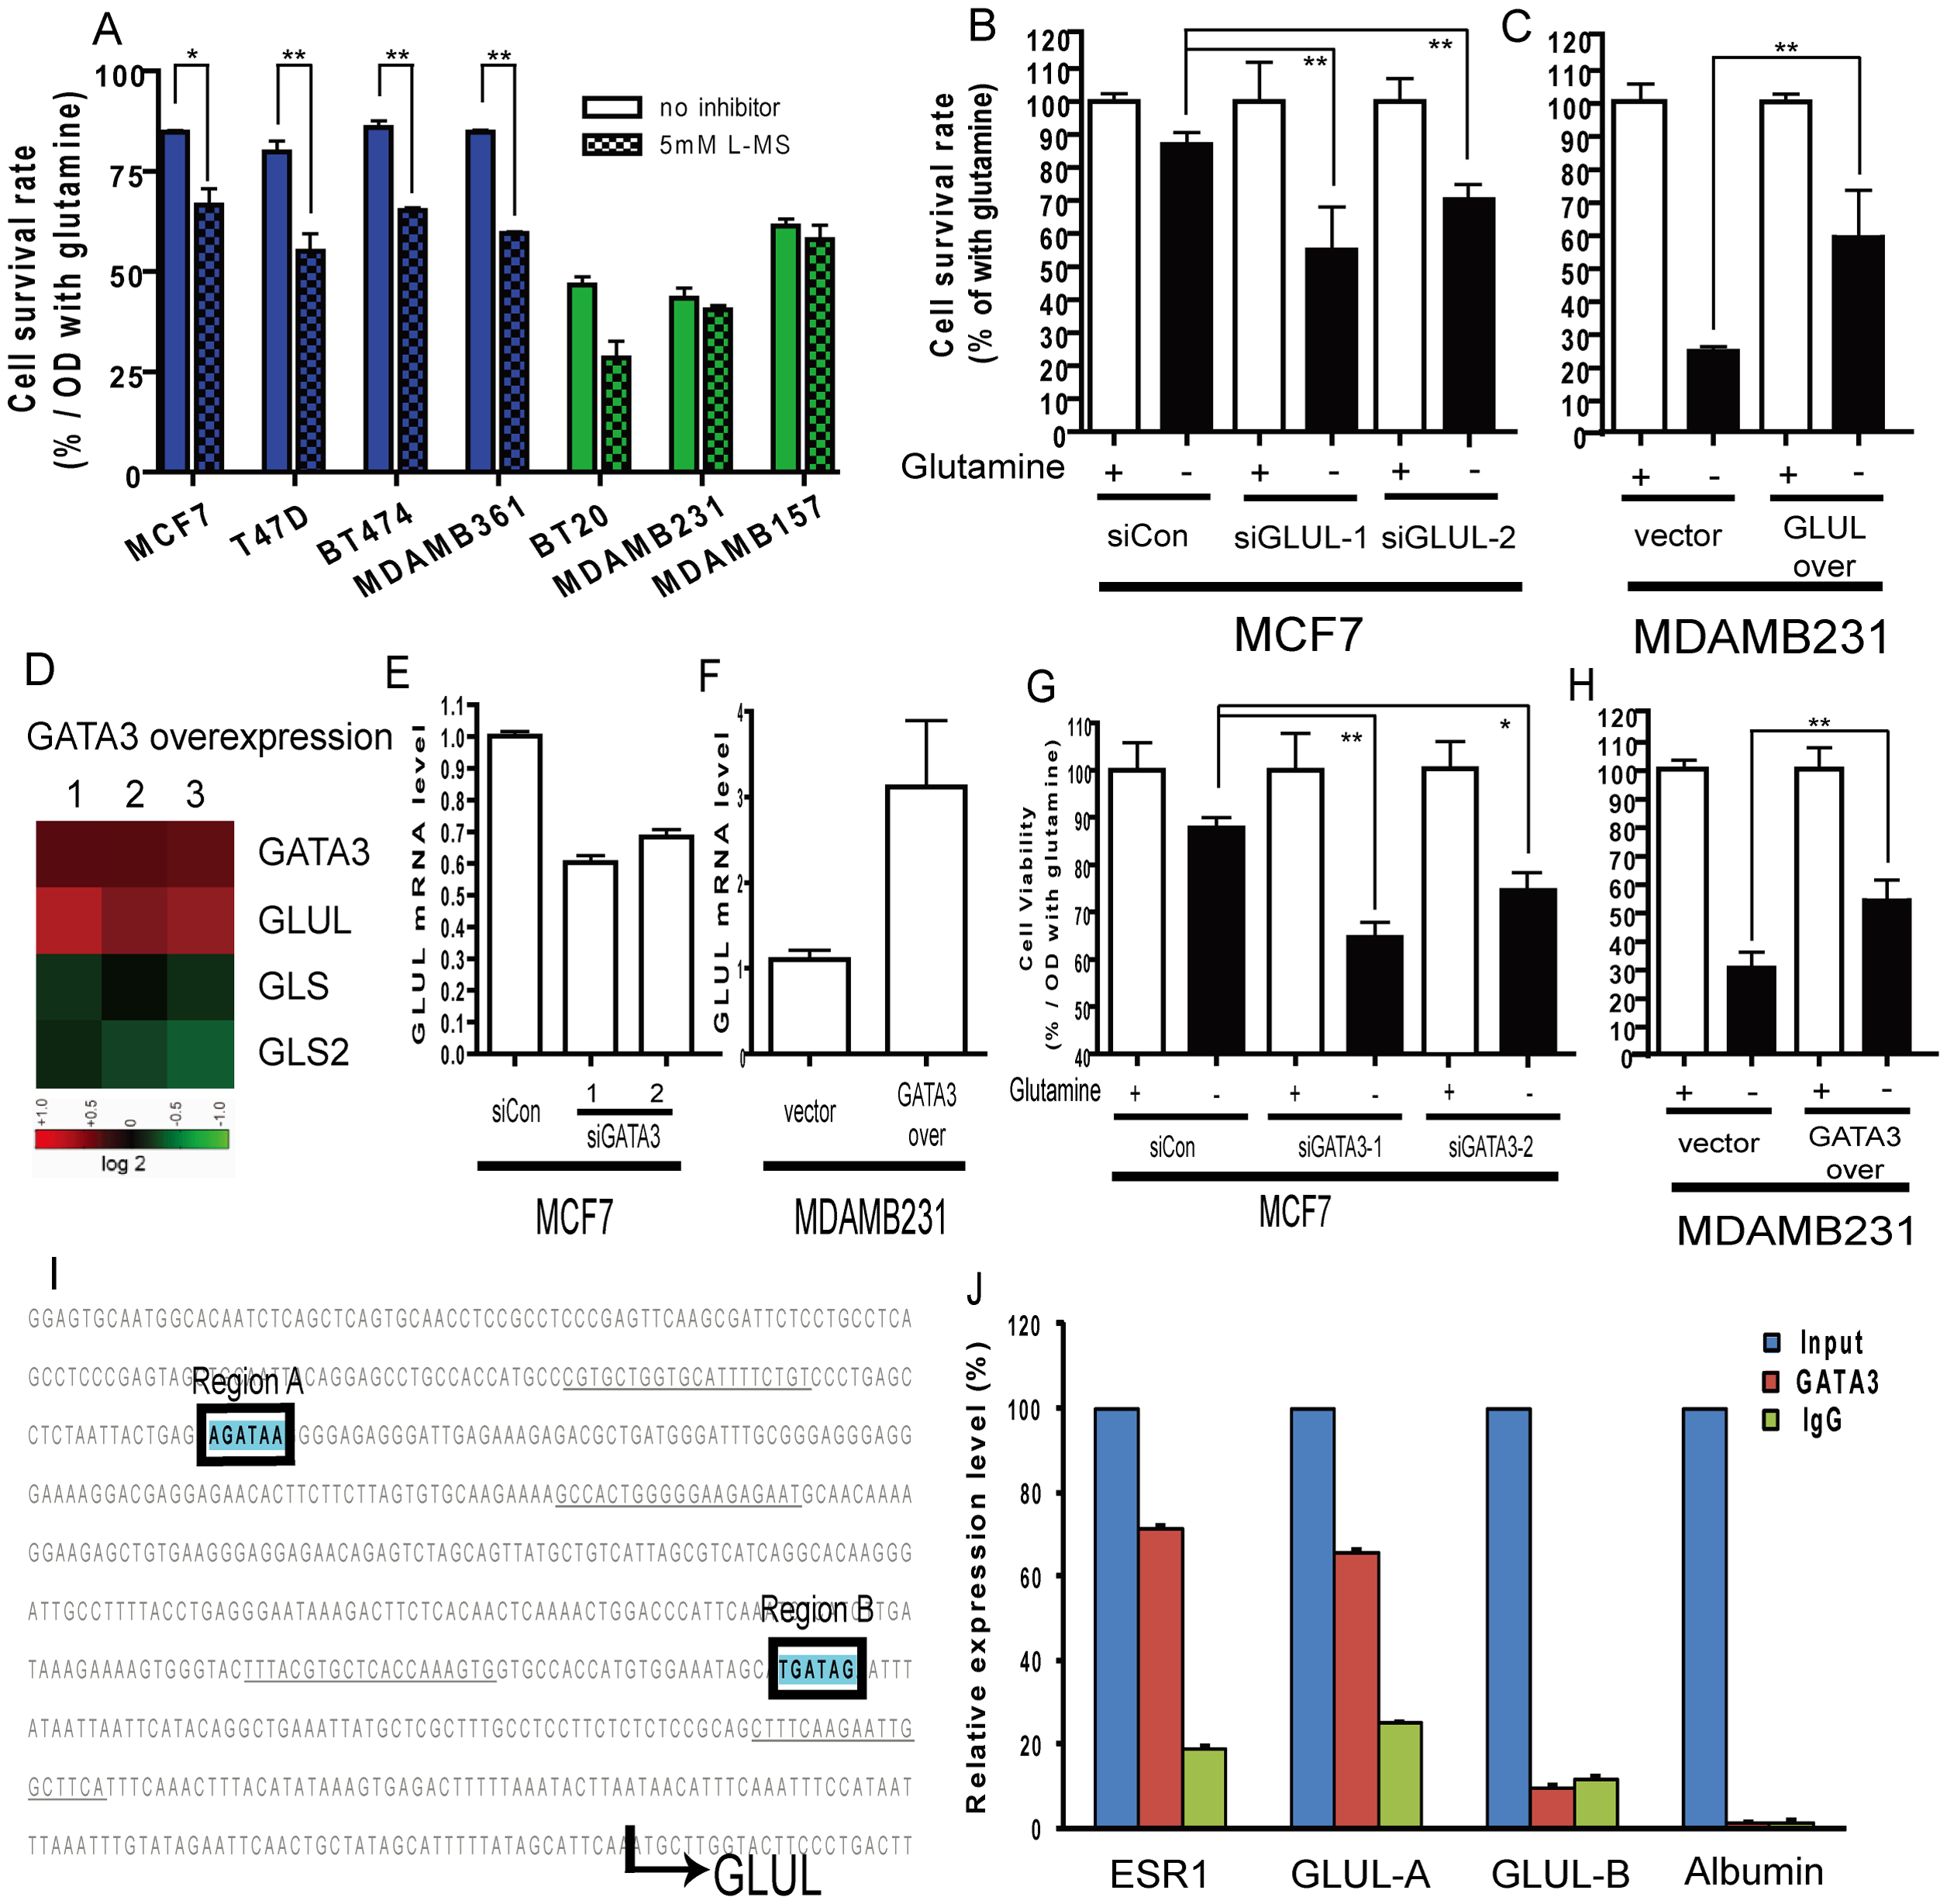 Contribution of luminal expression of GLUL and GATA3 to the glutamine-independence phenotype.